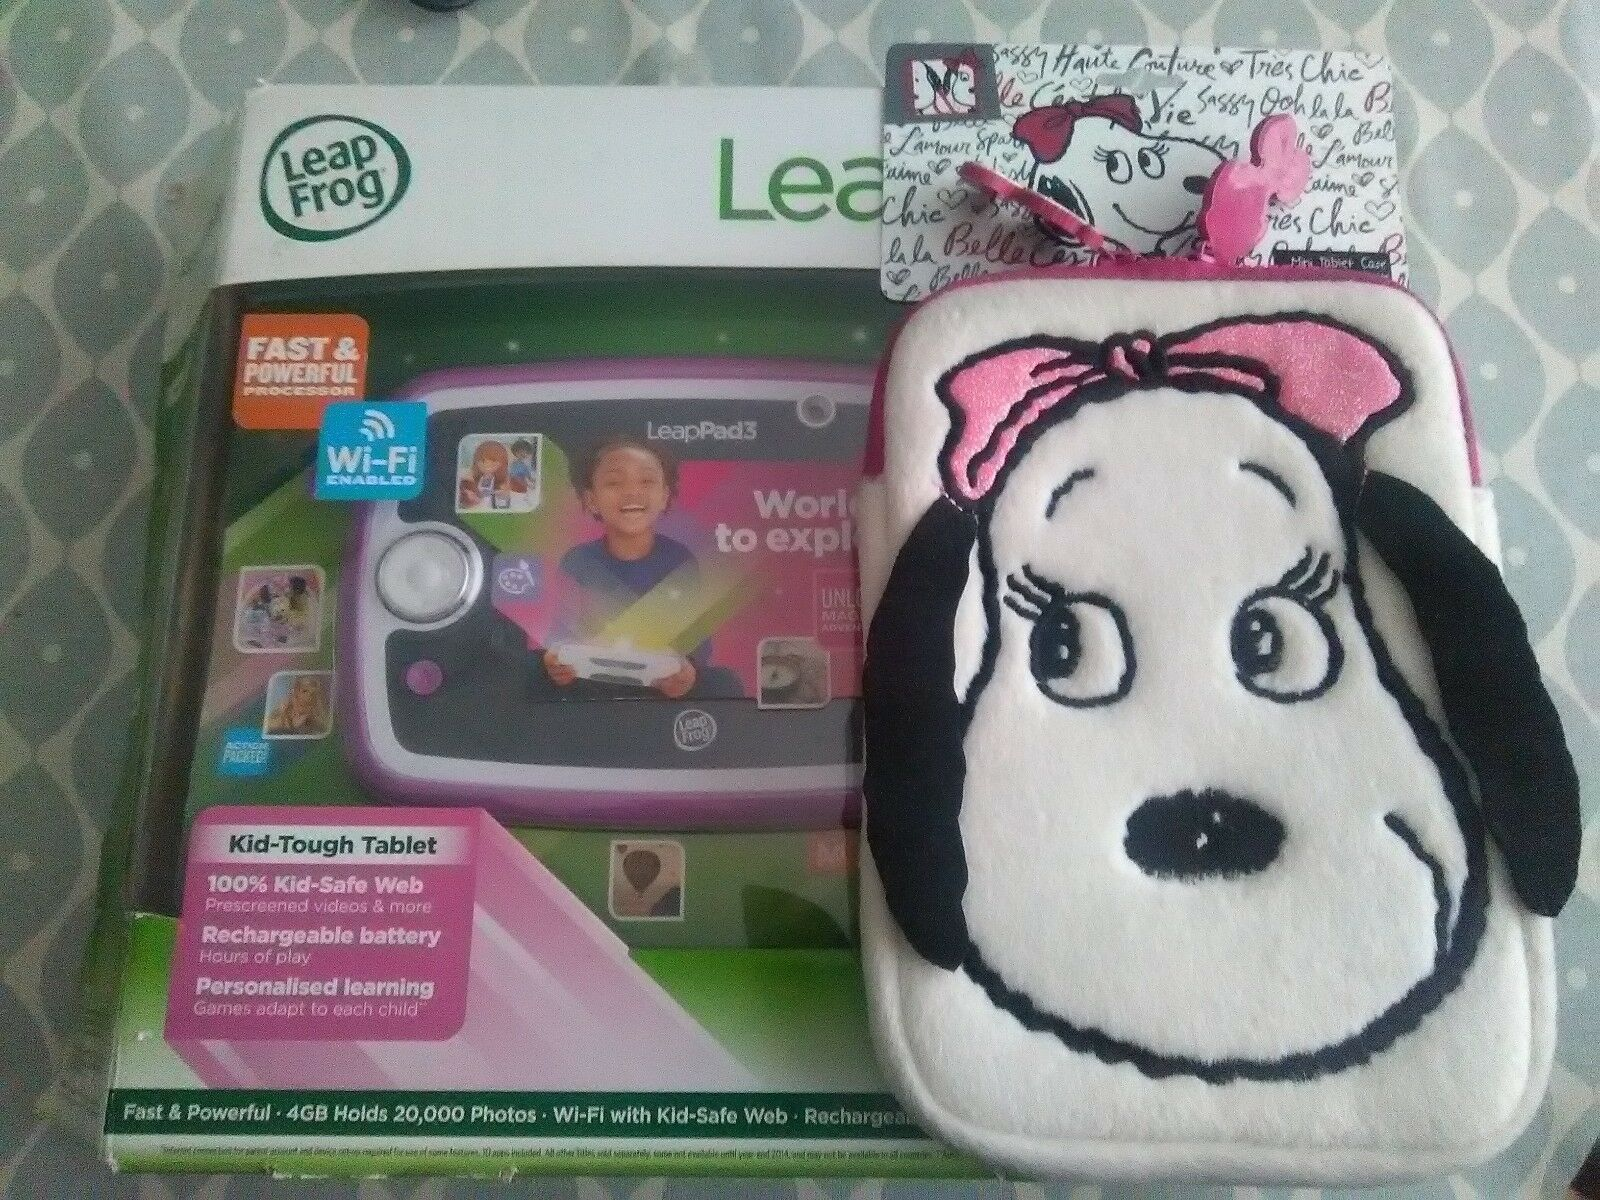 Leappad 3 by Leapfrog - Pink Tablet - Boxed with accessories